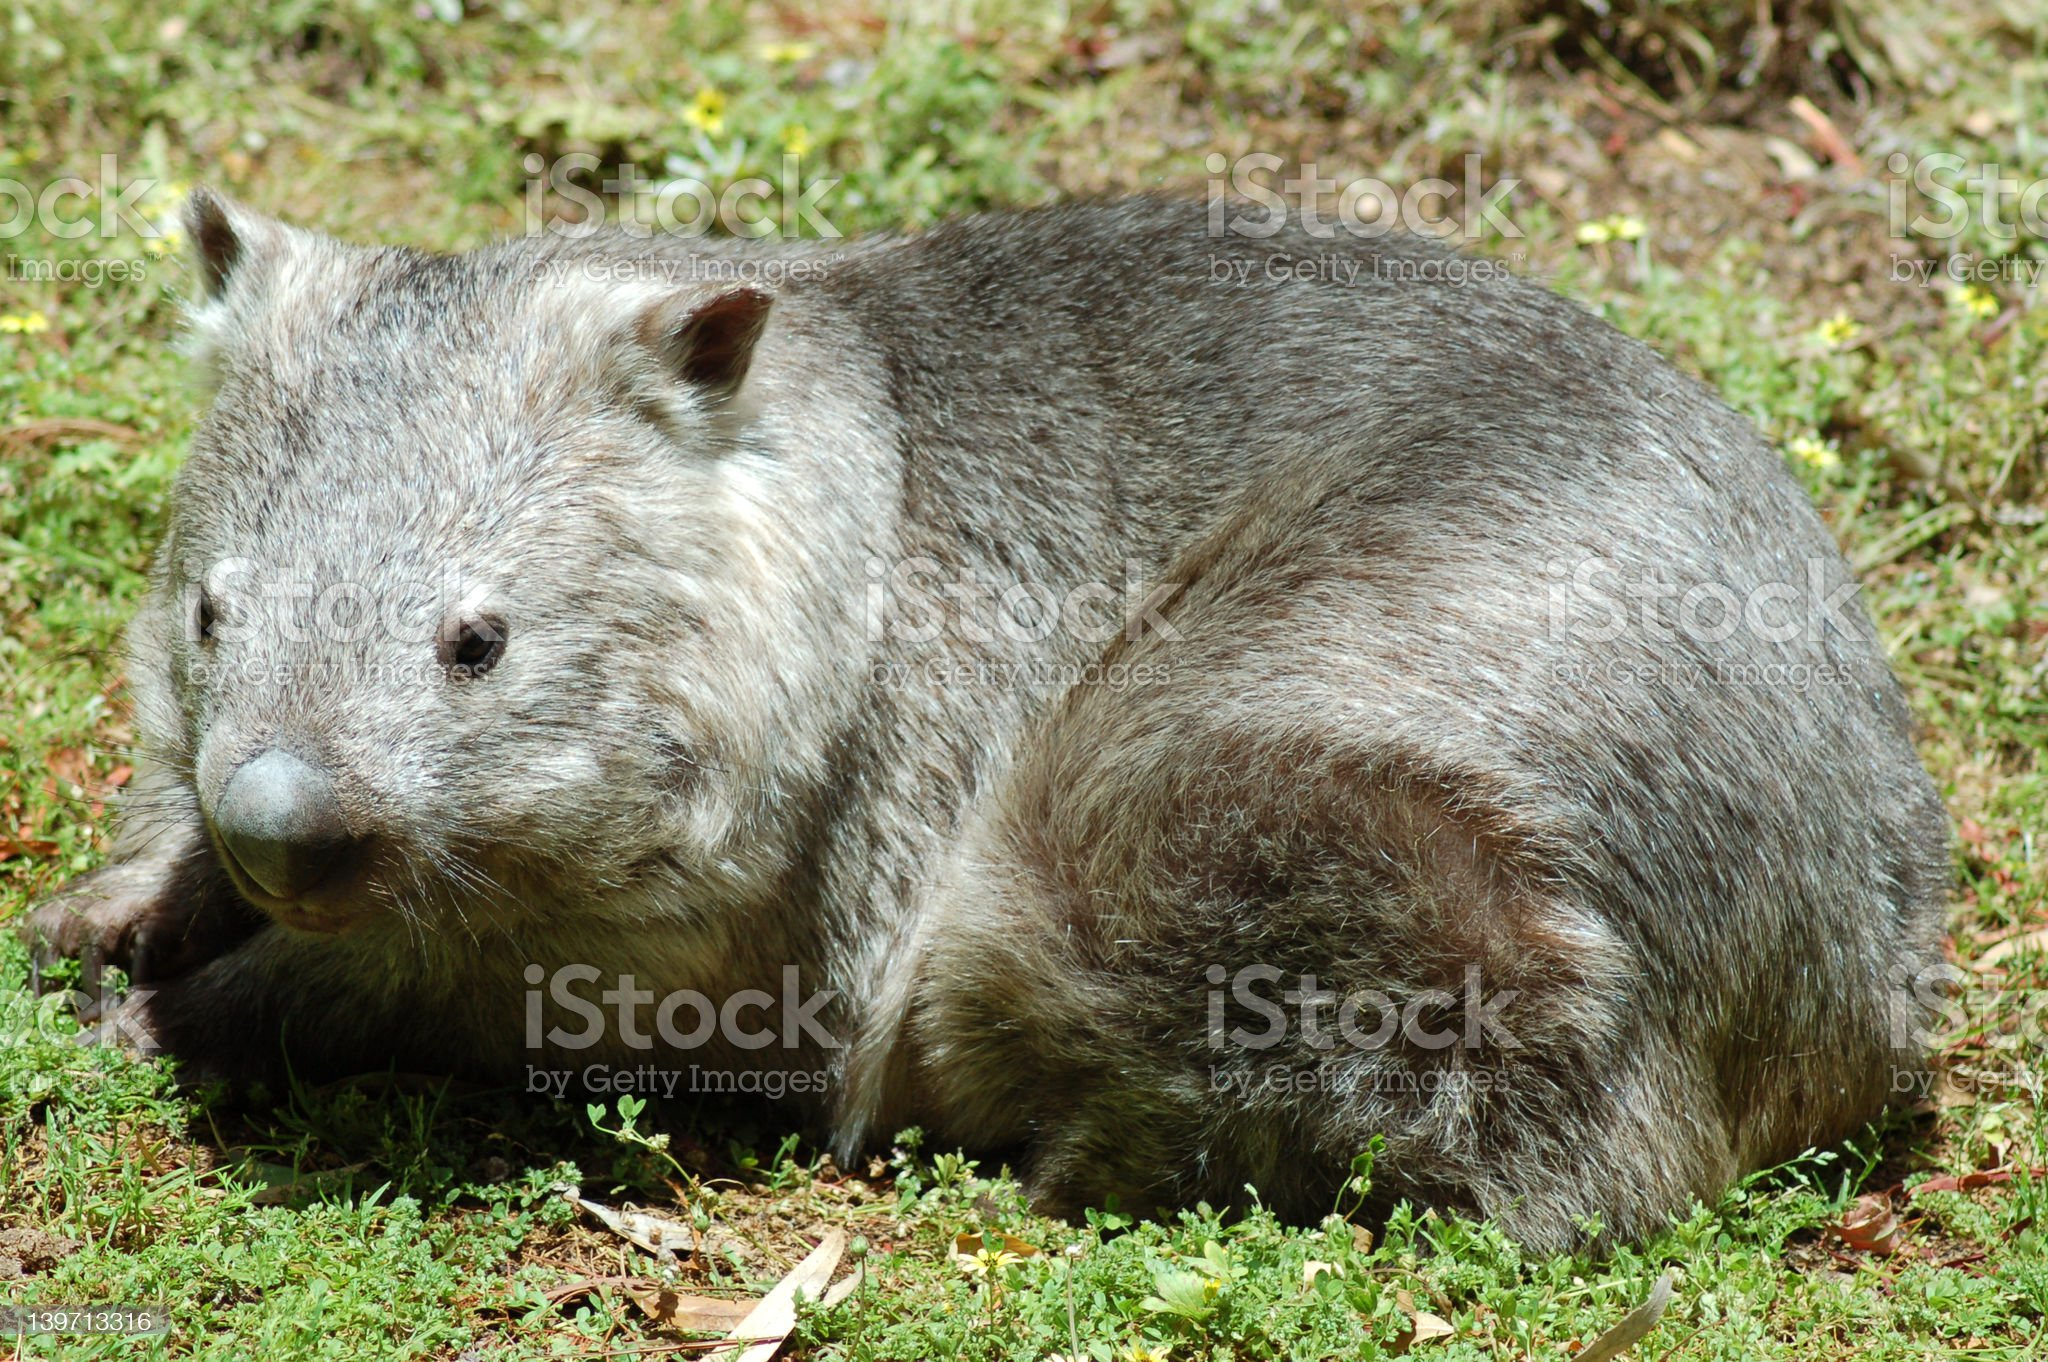 Southern Hairy Nosed Wombat royalty-free stock photo